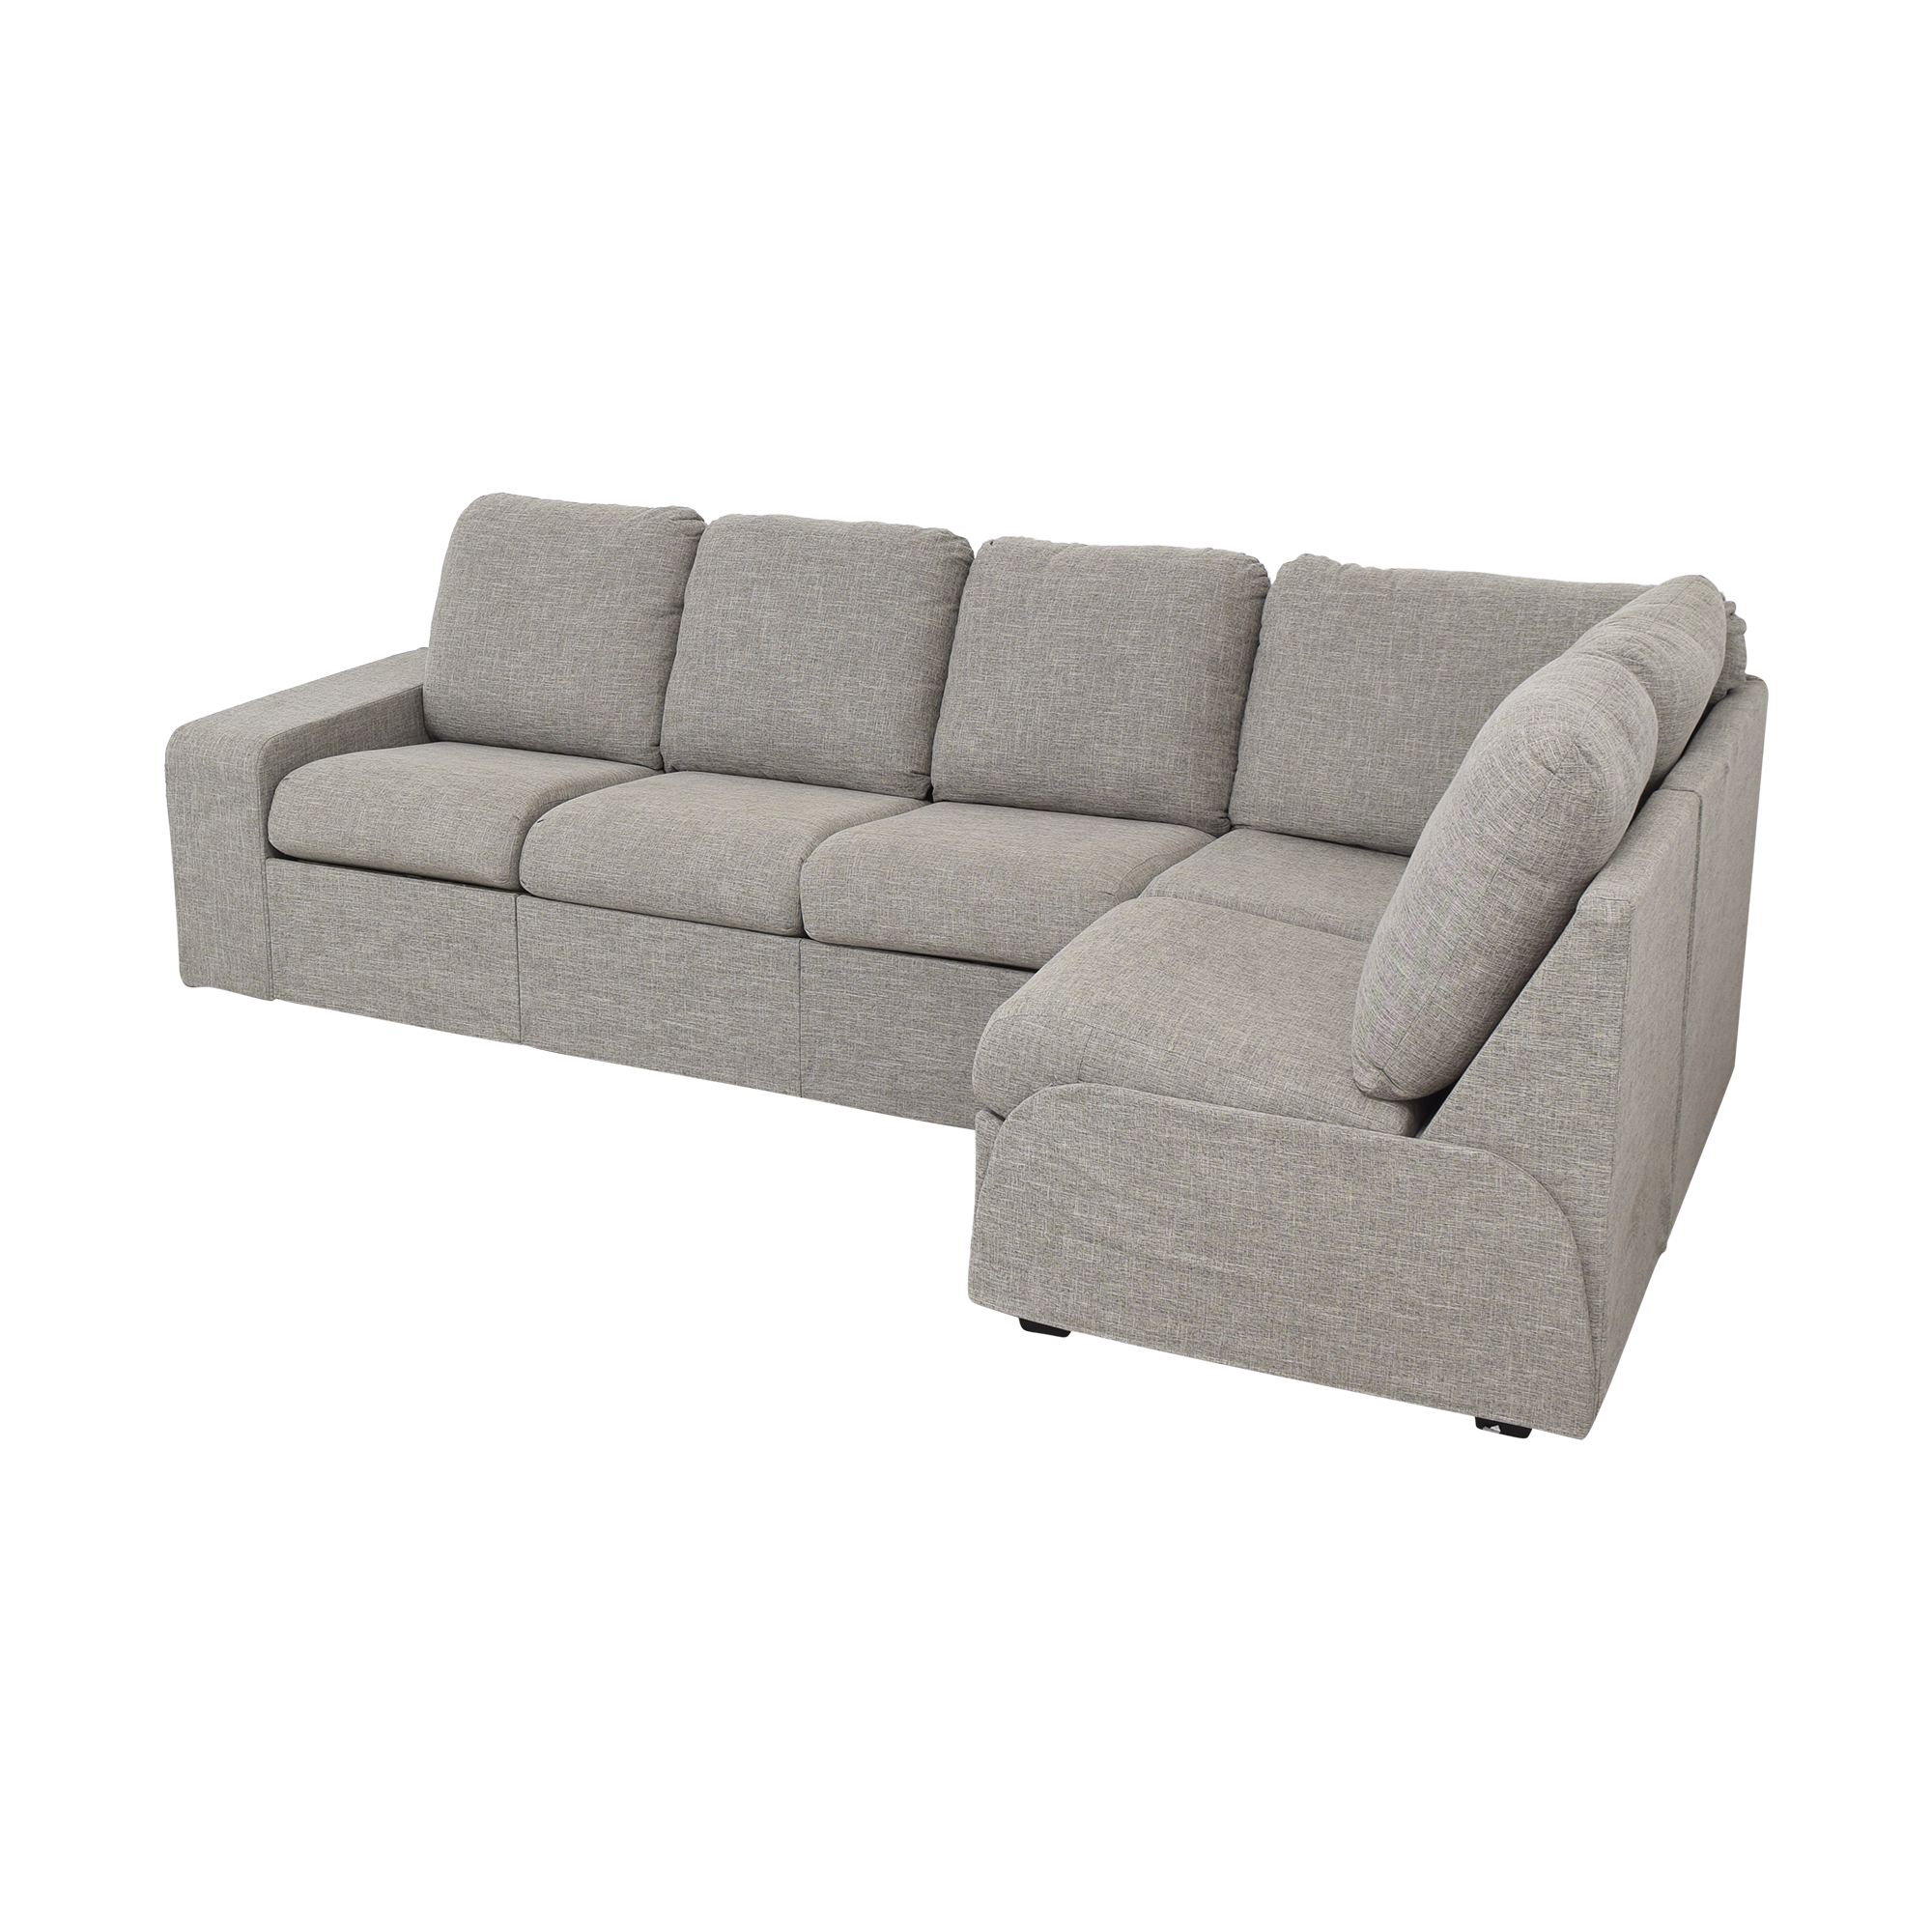 Home Reserve Home Reserve Jovie Sectional with Ottoman ct